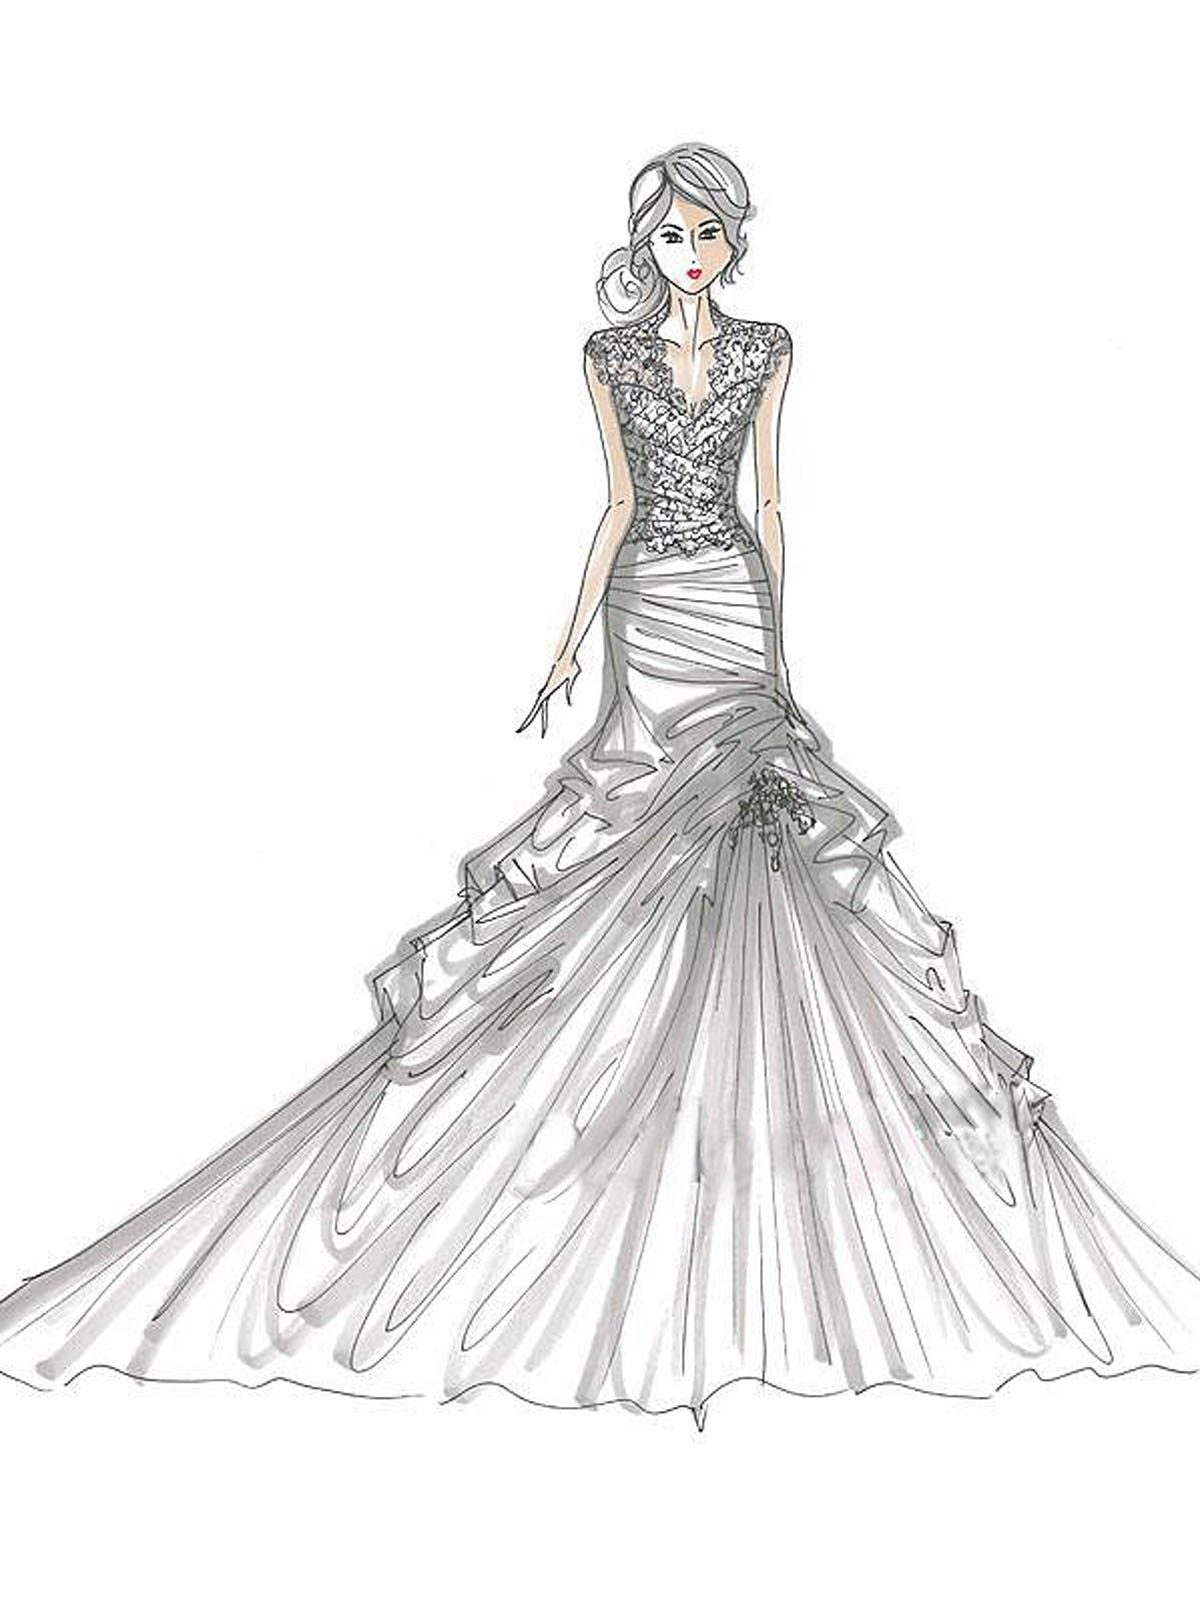 Of Wedding Dresses - Coloring Pages For Kids And For Adults